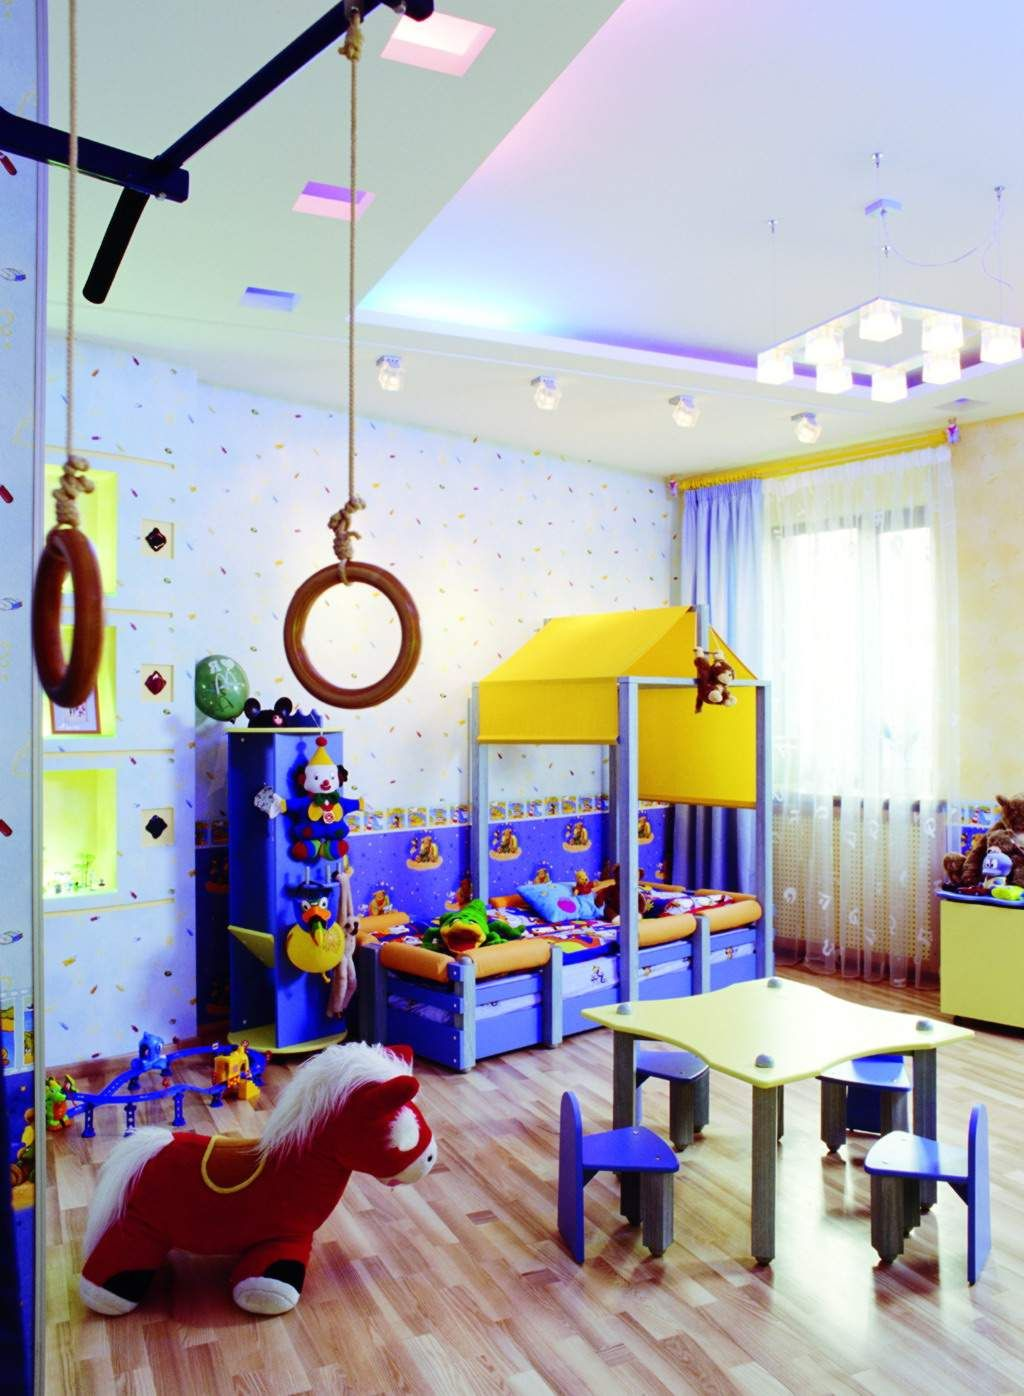 Kids bedroom kids room interior design with play and learn area kids room design with wallpaper - Kids room decoration ...